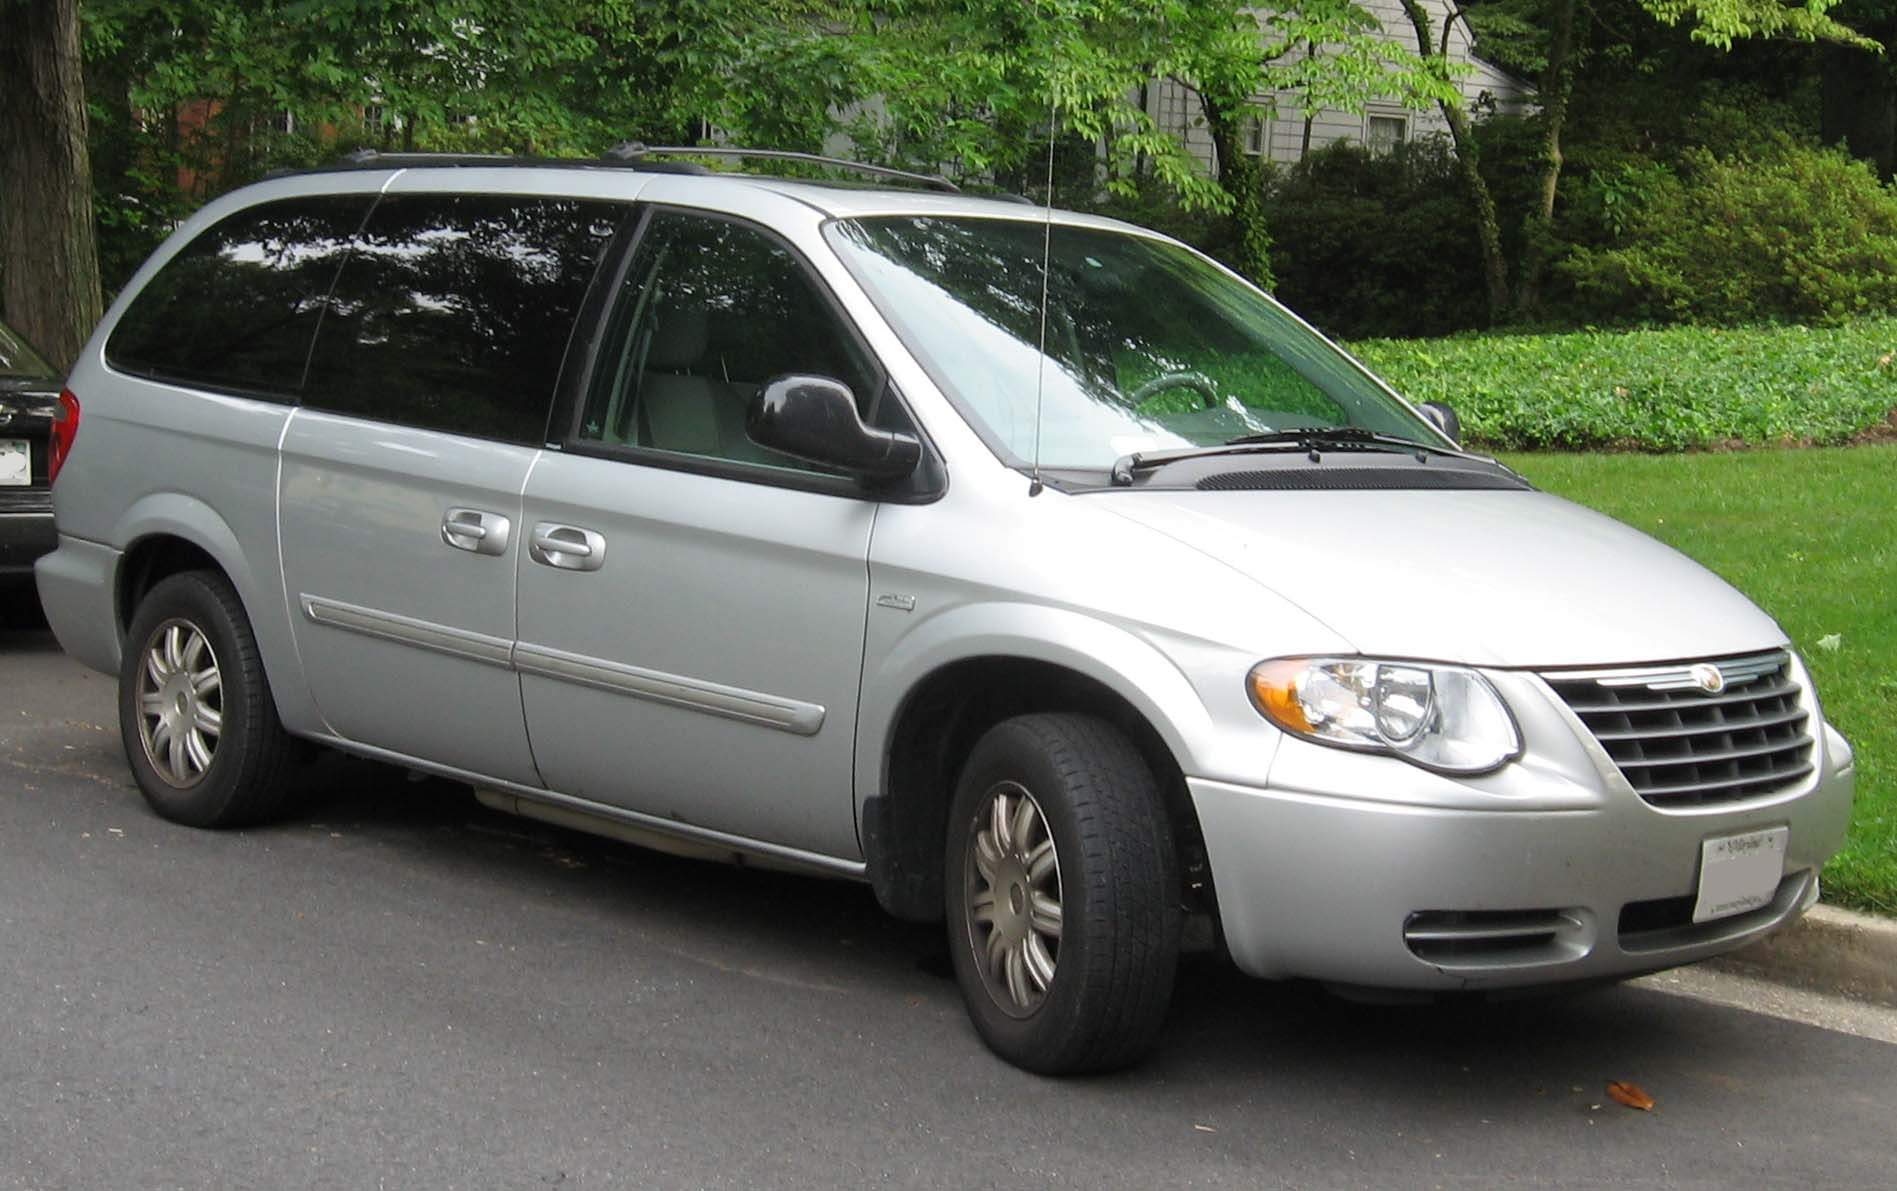 2005 Dodge Caravan never chrysler, rok 2005 - Car Photo and Specs